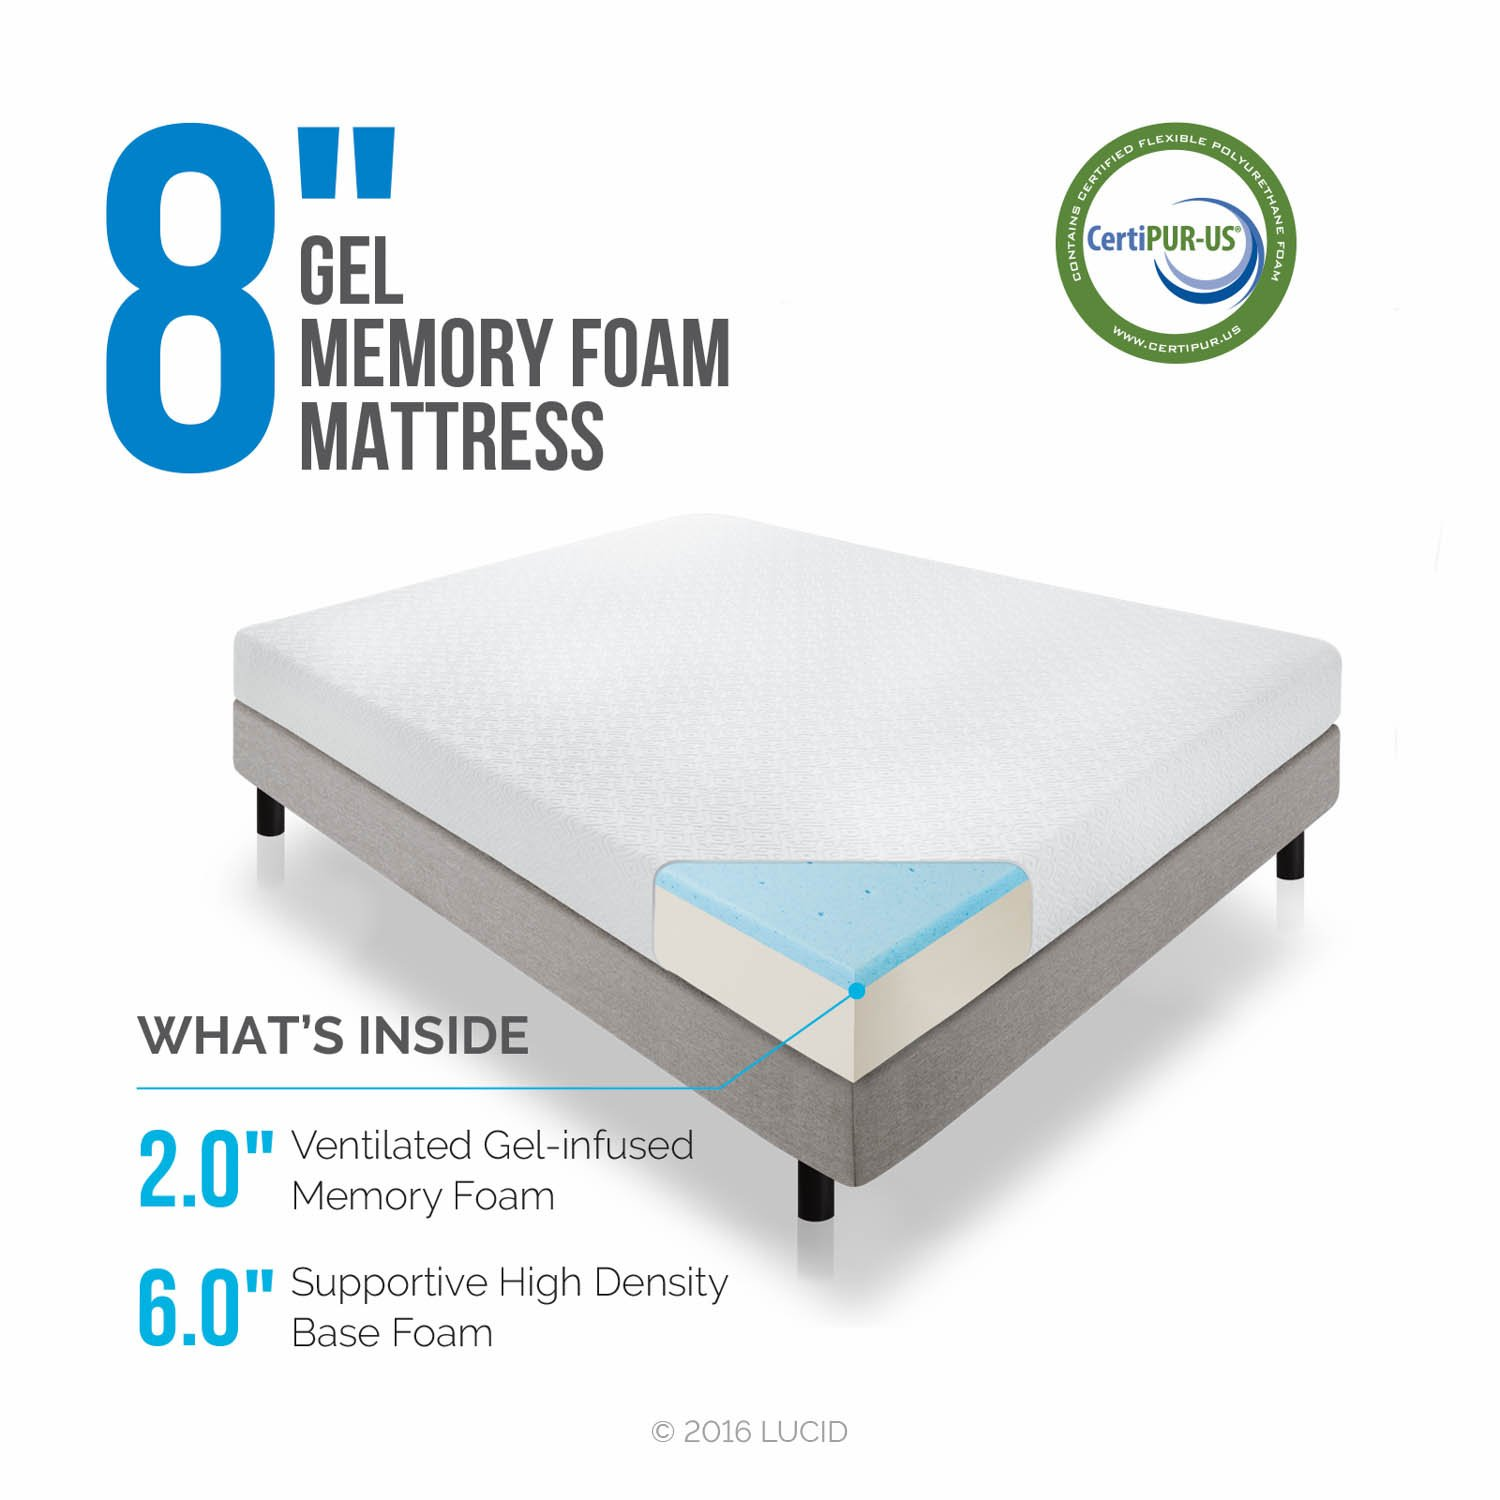 Amazon.com: LUCID 8 Inch Memory Foam Mattress   Dual Layered   CertiPUR US  Certified   Medium Firm Feel   Full Size: Kitchen U0026 Dining